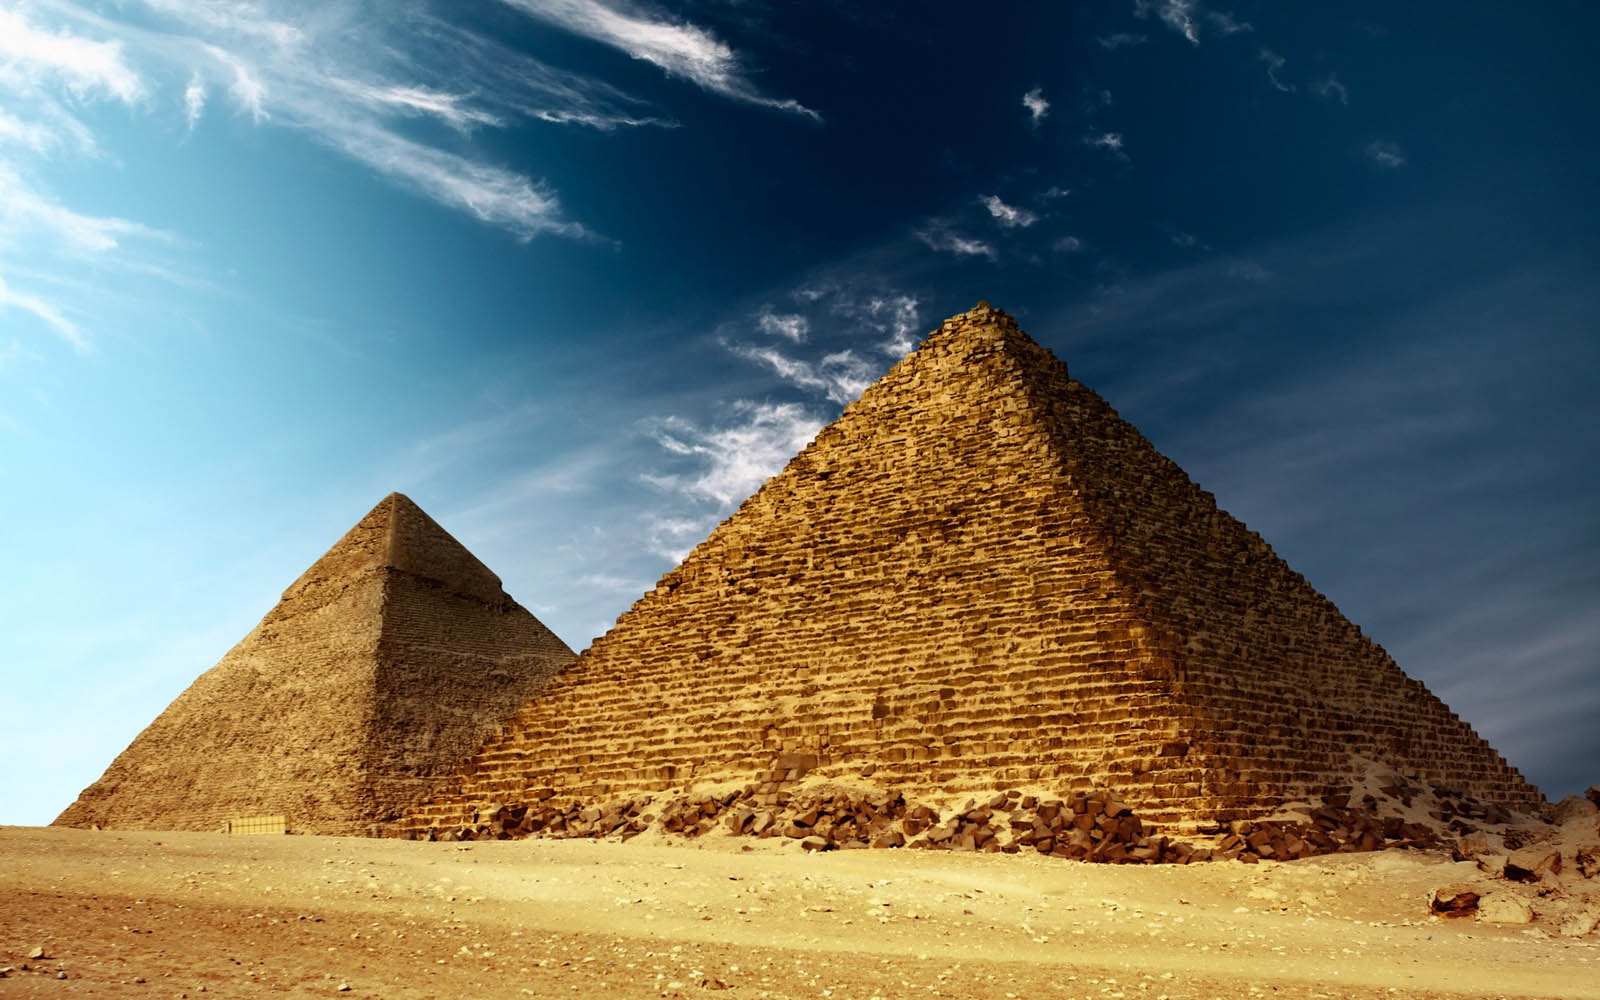 pyramids from egypt